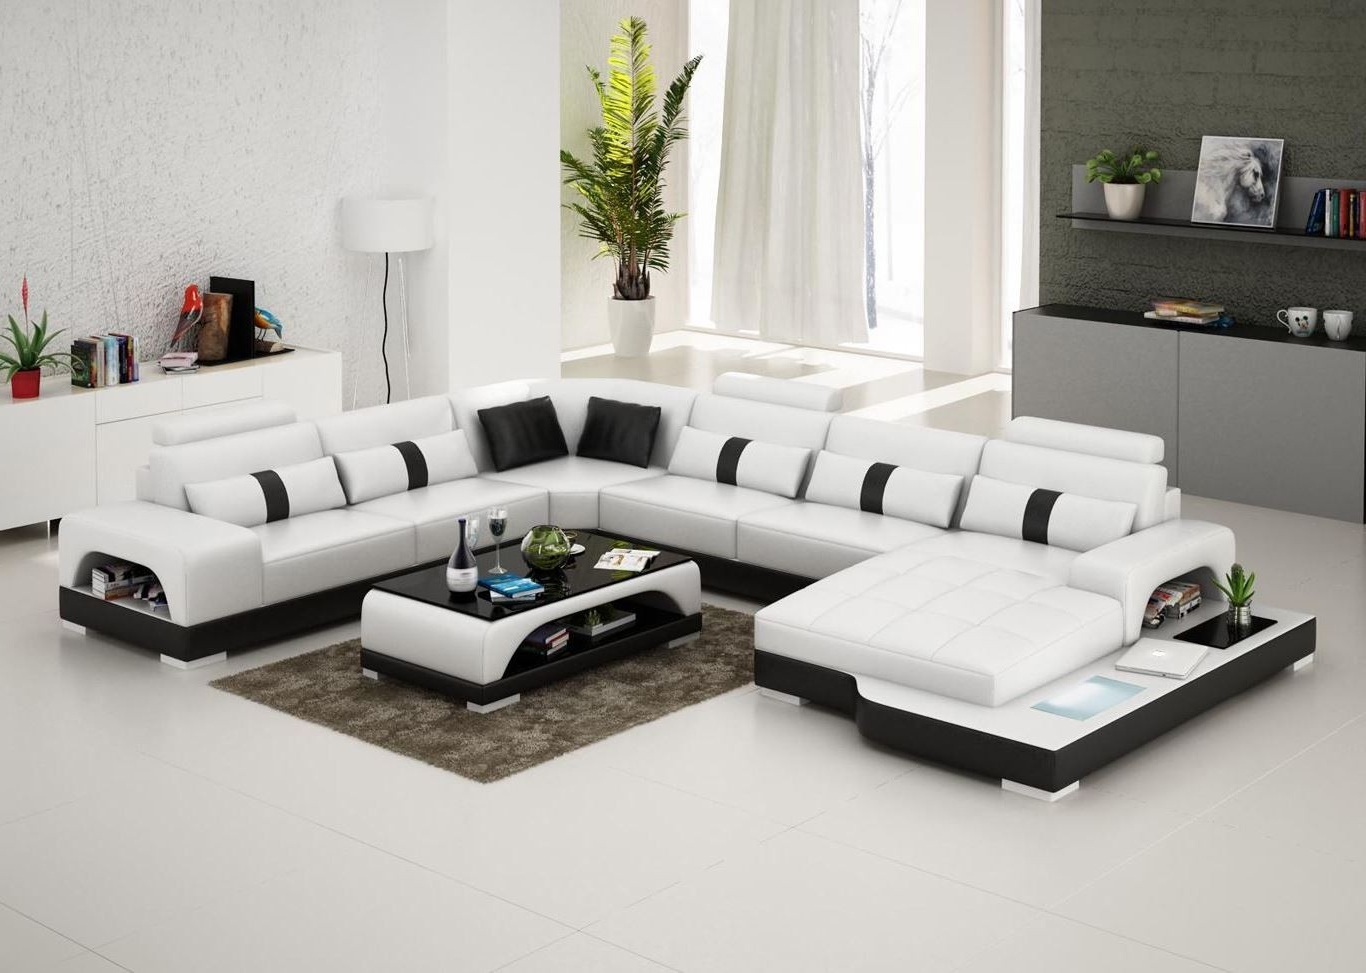 Newest Nz Sectional Sofas In Furniture : Corner Couch Covers Nz Vintage Corner Couch Sectional (View 10 of 20)